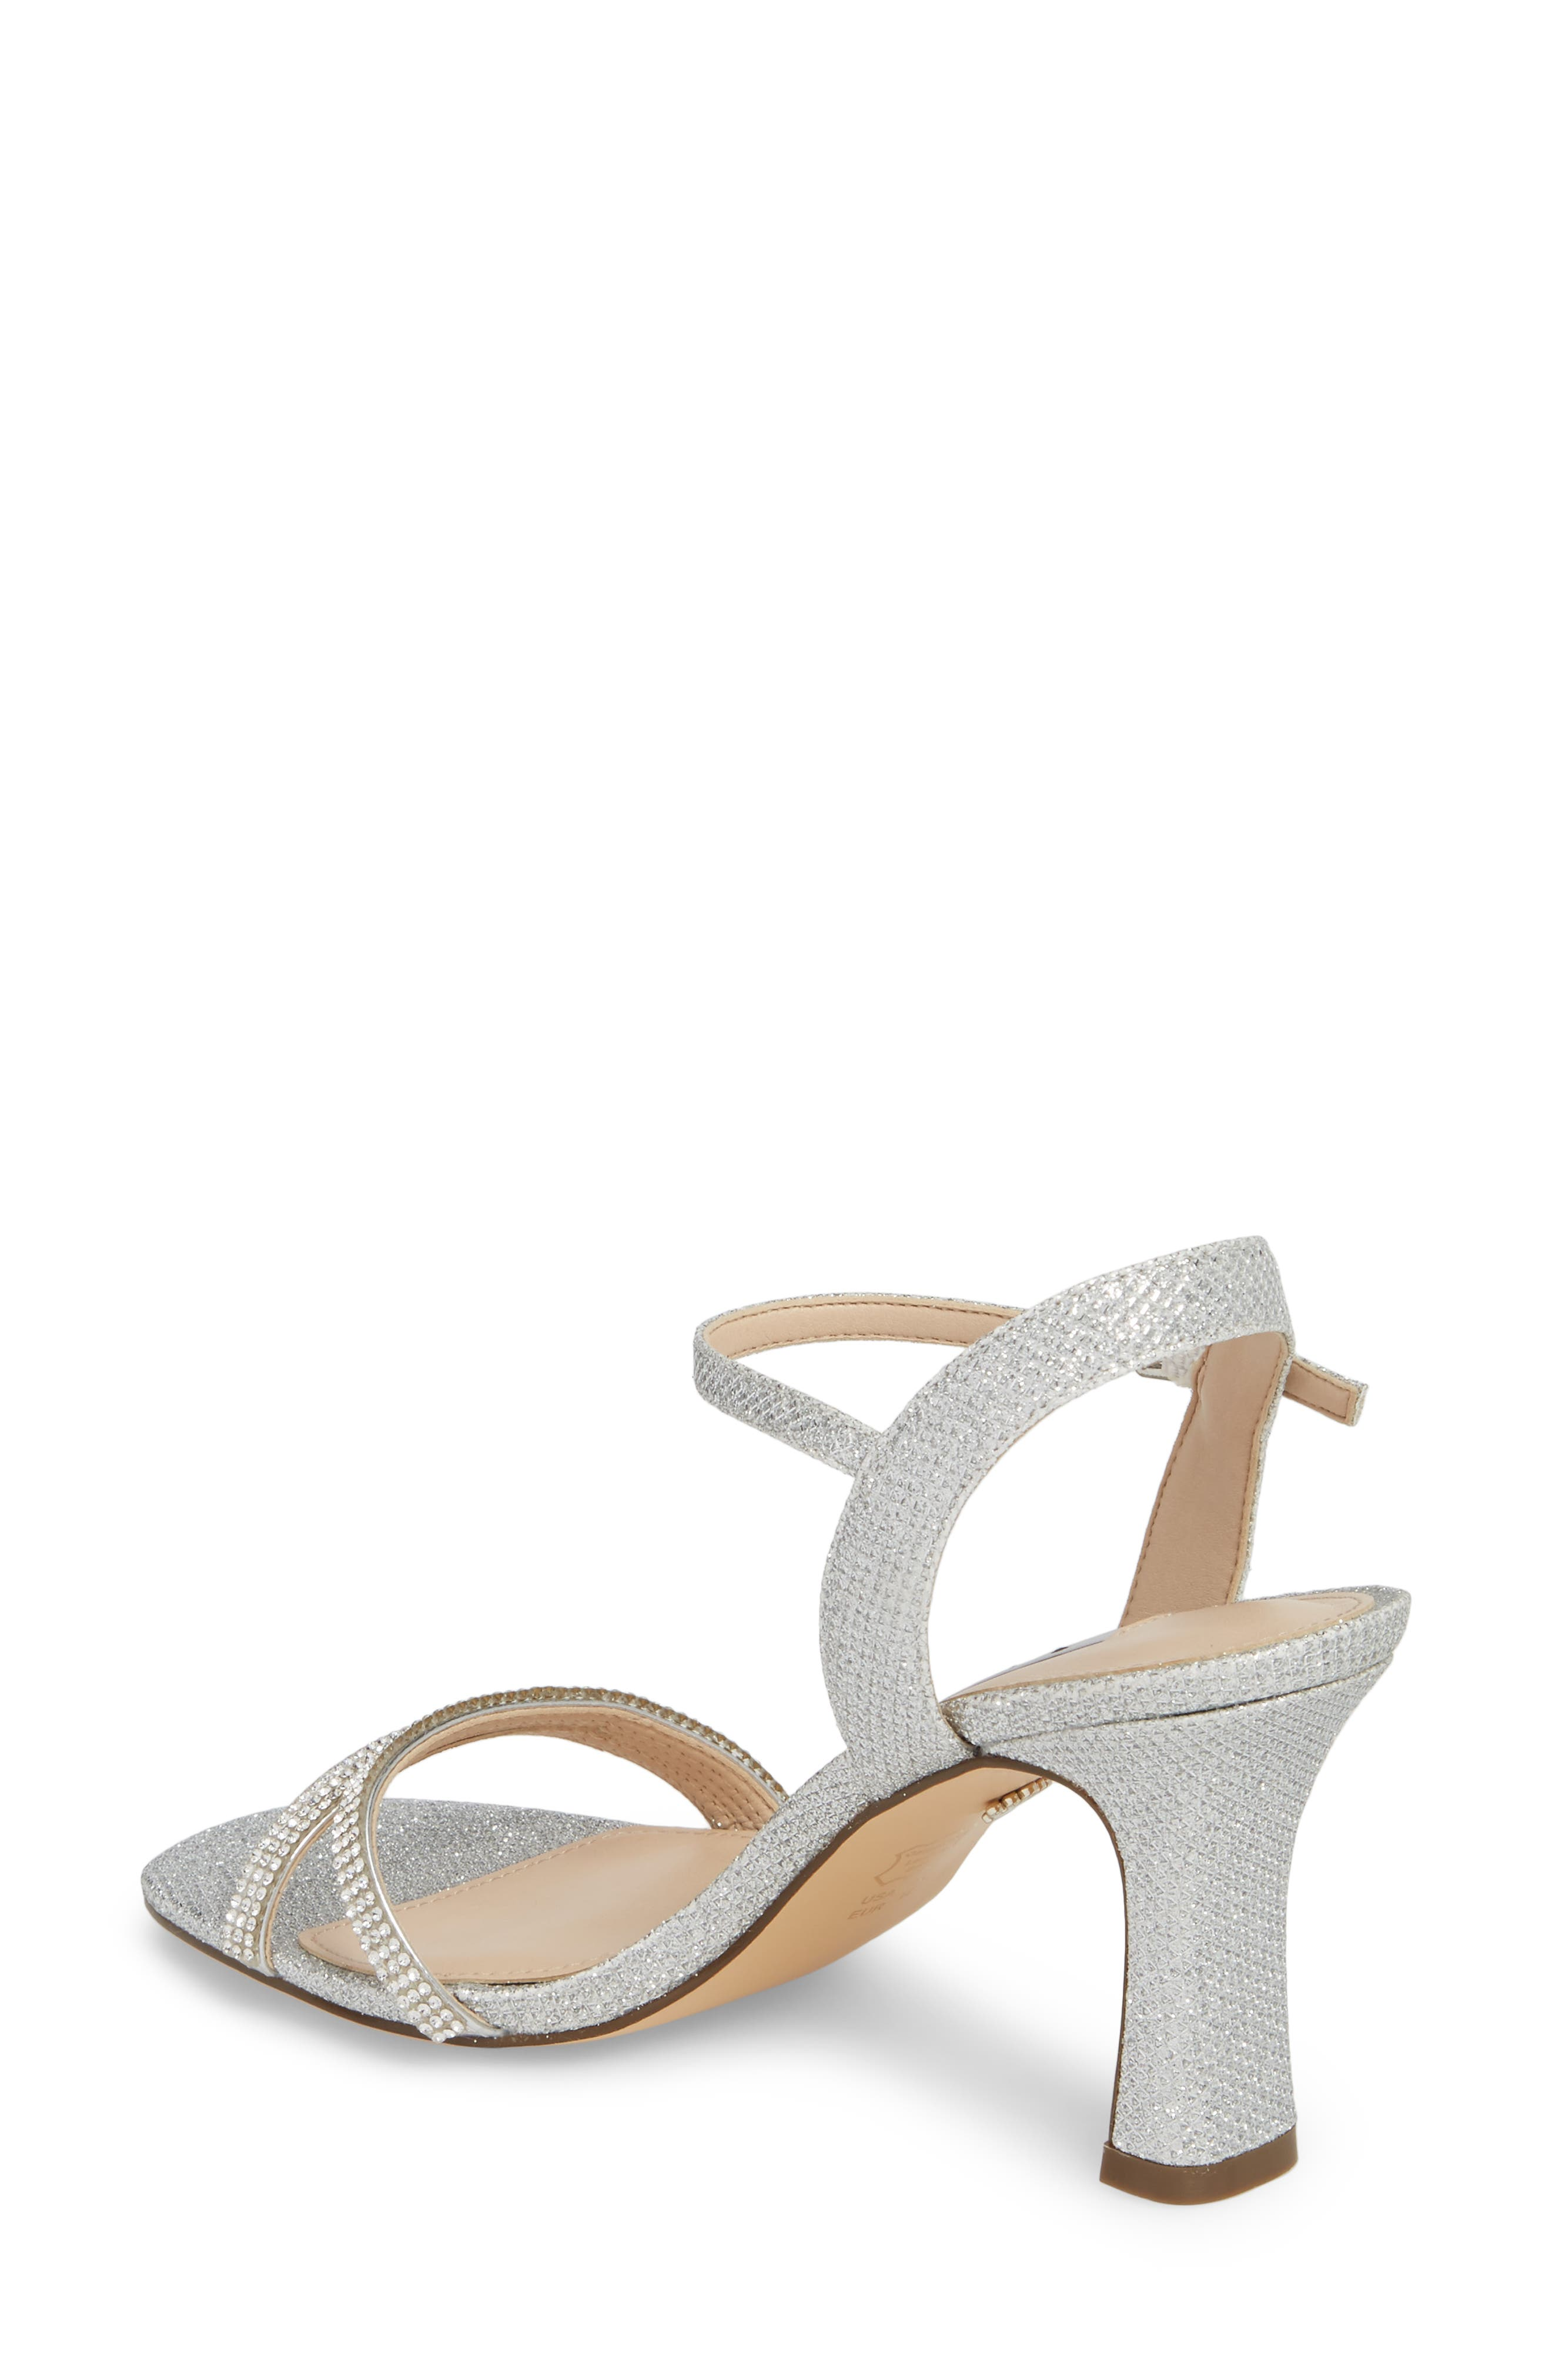 Avalon Ankle Strap Sandal,                             Alternate thumbnail 2, color,                             Silver Fabric